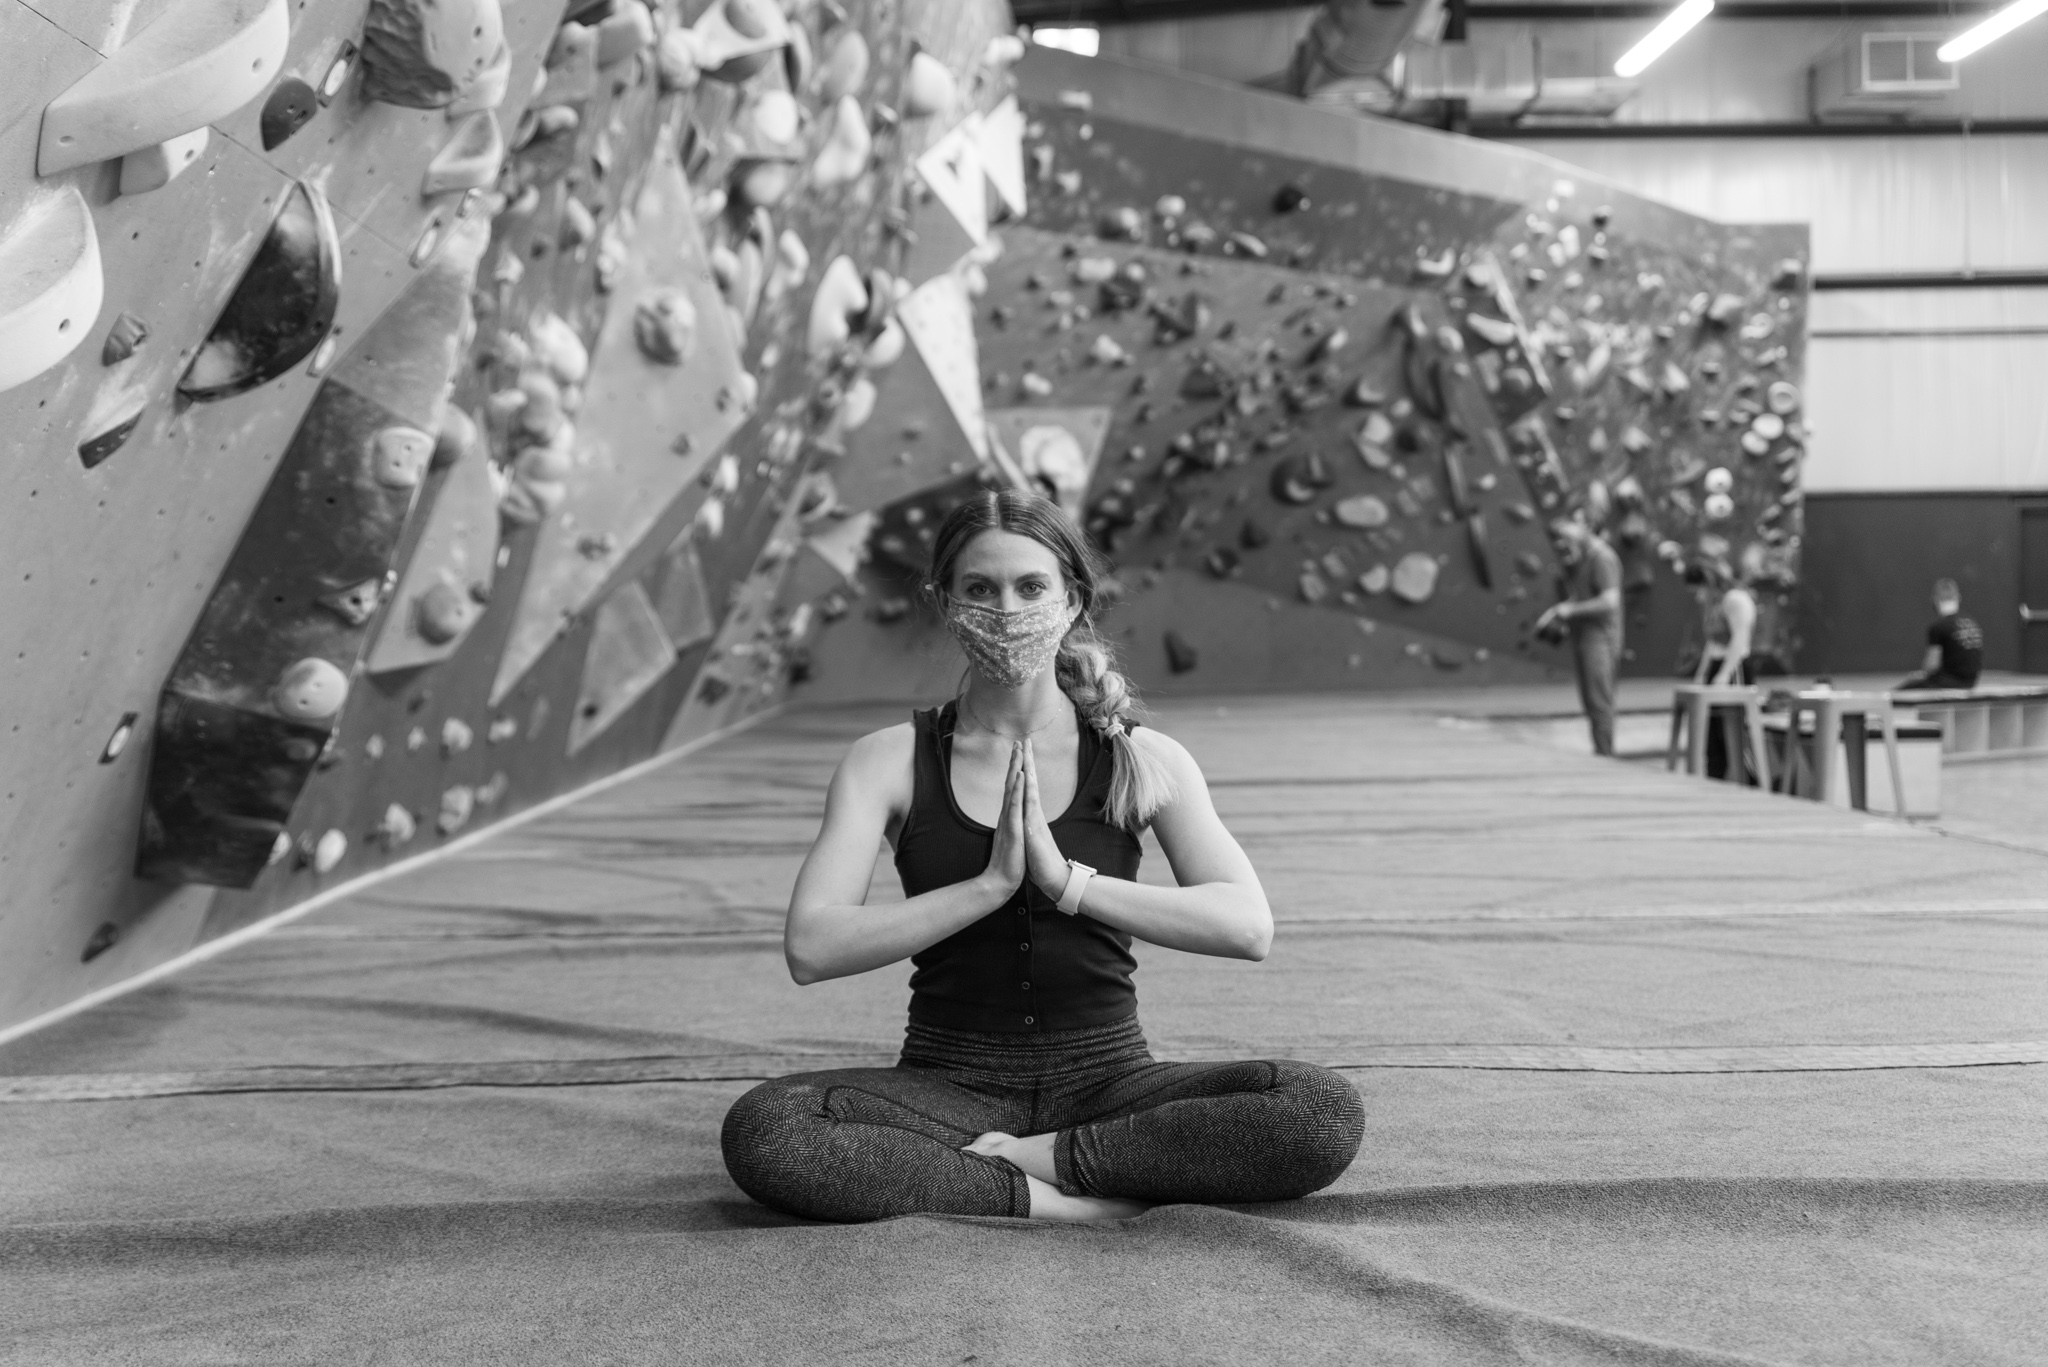 Yoga instructor sitting cross-legged with her hands to her heart